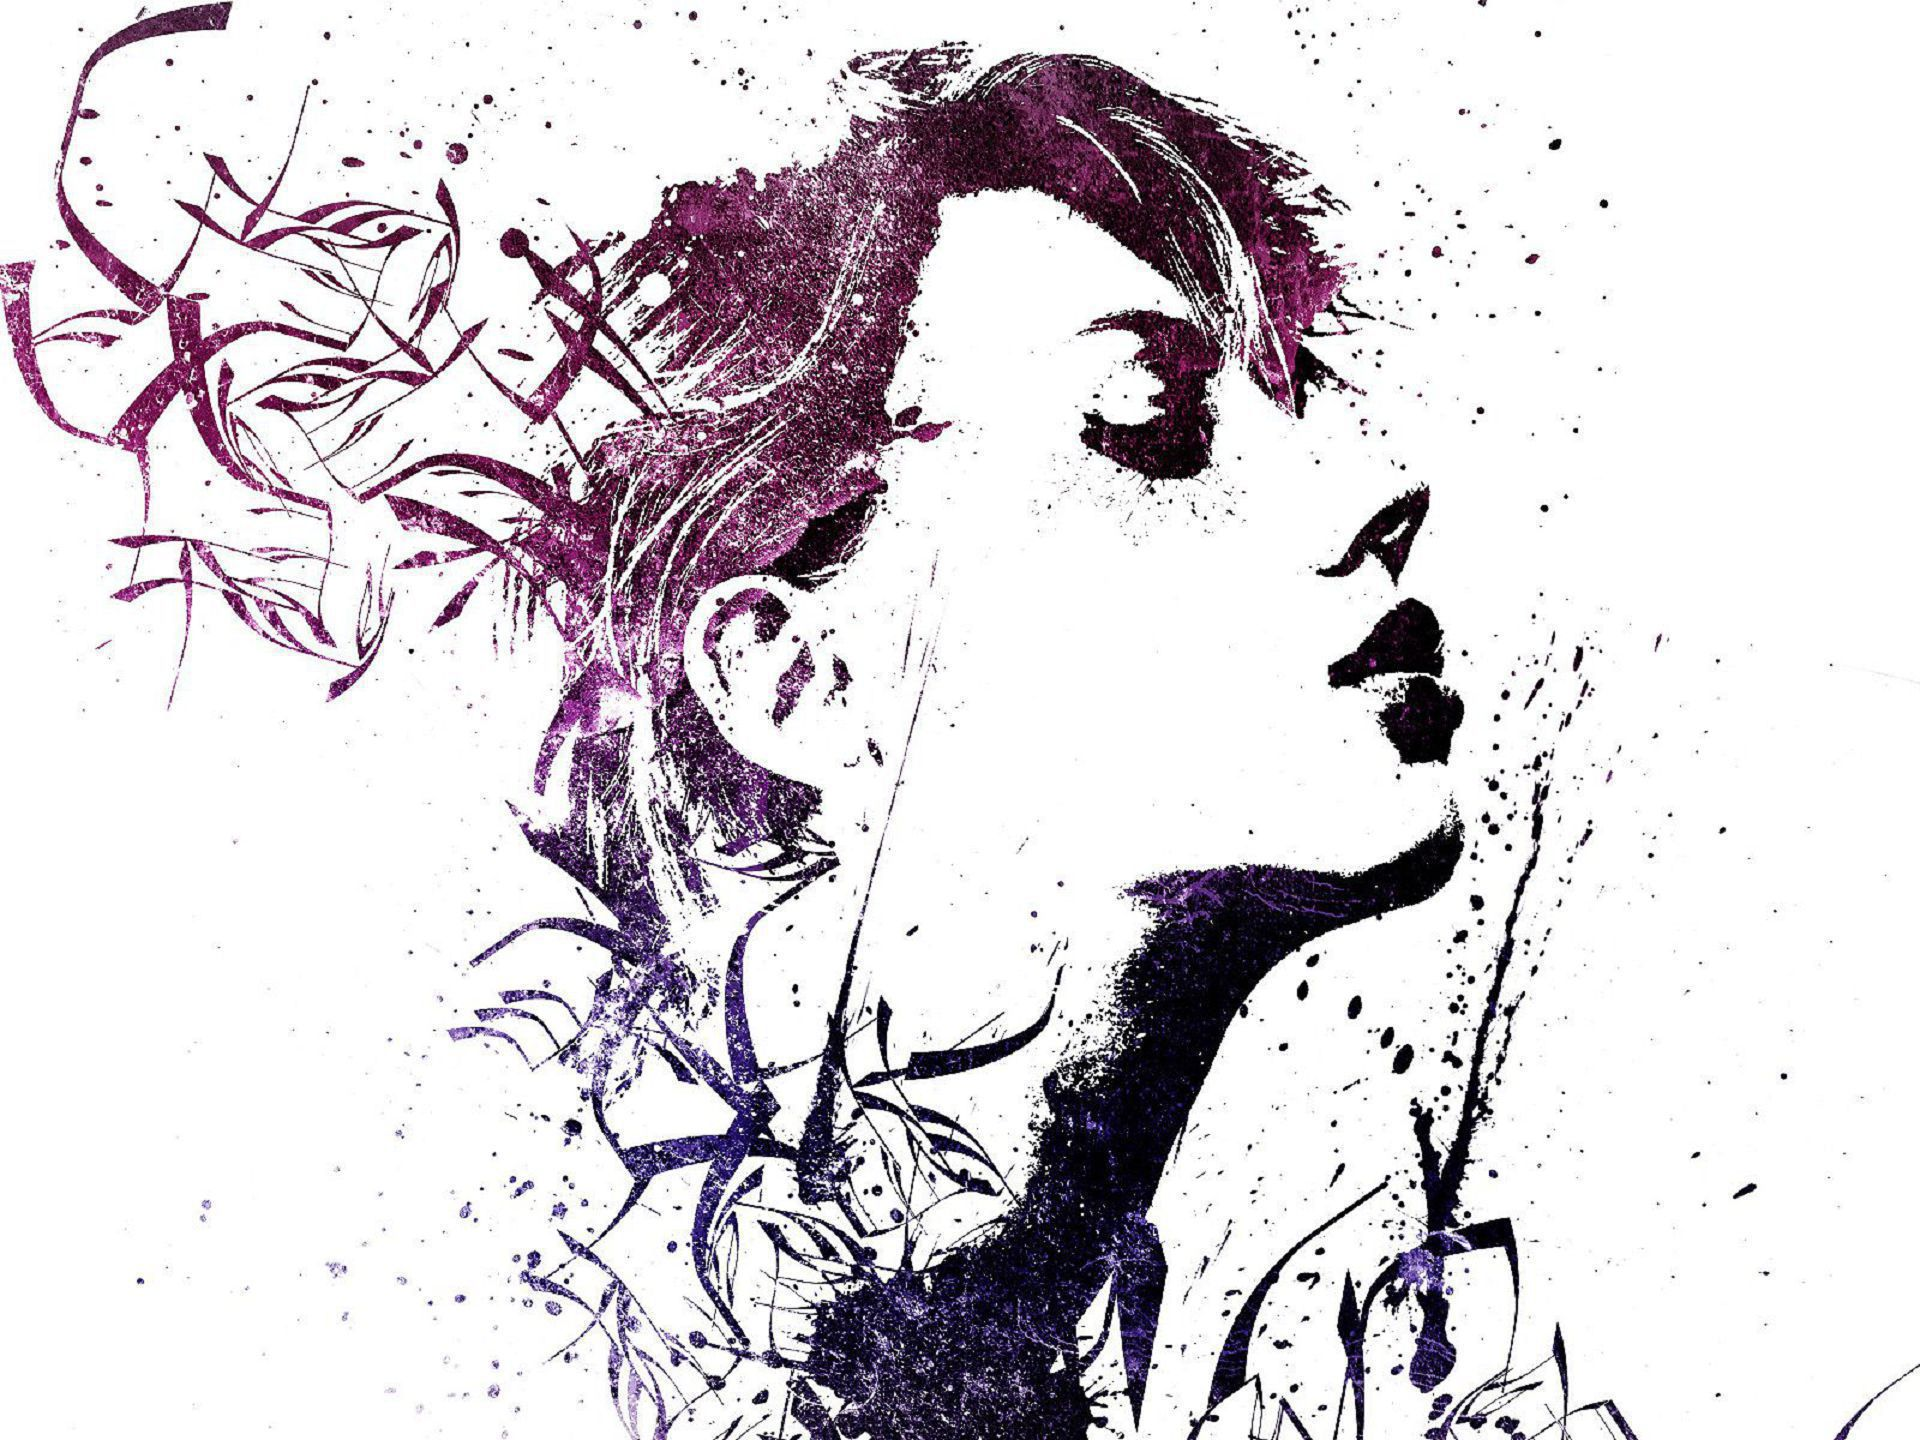 Abstract Girls Wallpapers Backgrounds